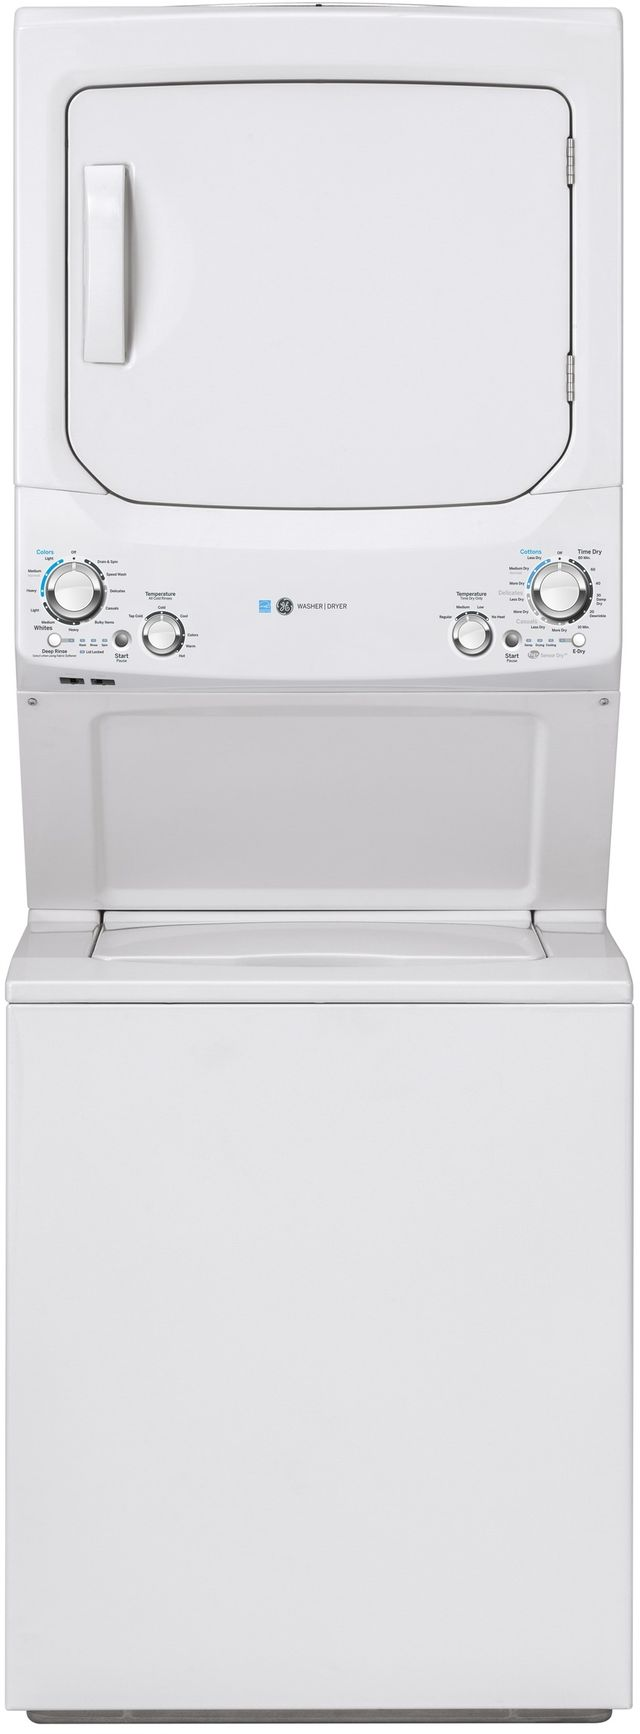 GE® Unitized Spacemaker® 3.9 Cu. Ft. Washer, 5.9 Cu. Ft. Dryer White Stack Laundry-GUD27EESNWW